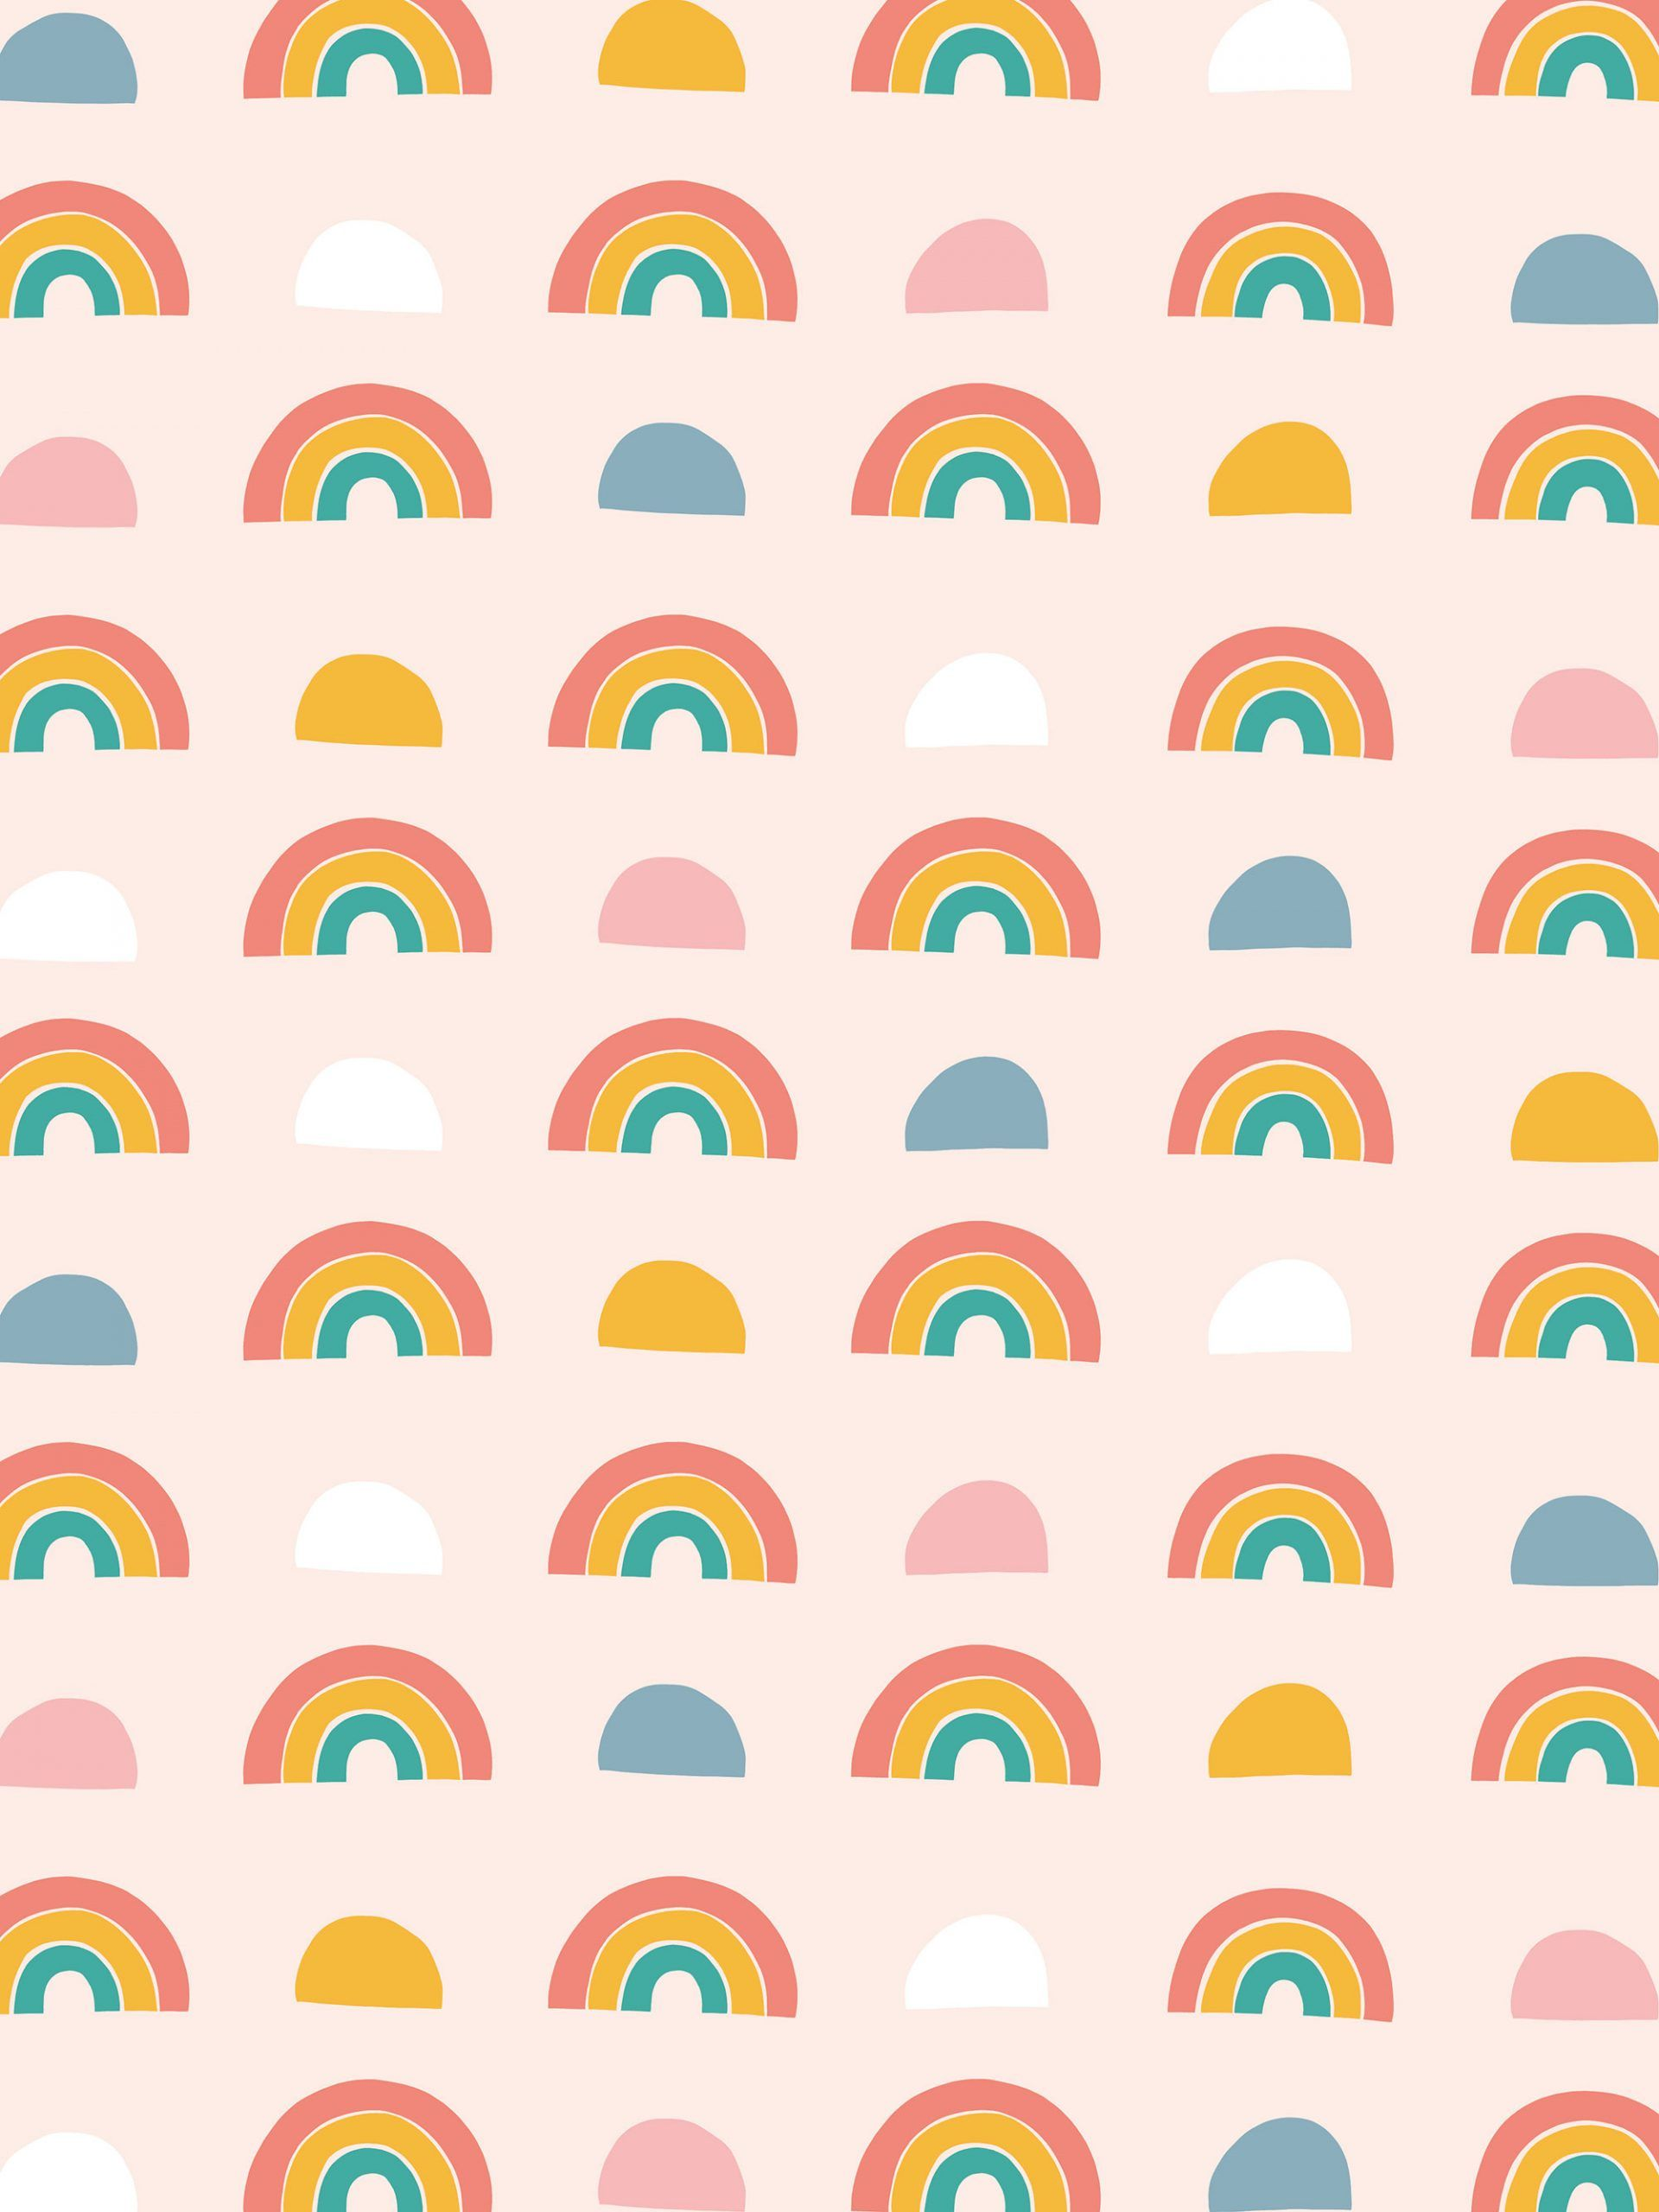 Rainbow Patterned Desktop Tablet And Phone Wallpaper Rainbow Wallpaper Backgrounds Rainbow Wallpaper Iphone Tablet Wallpaper